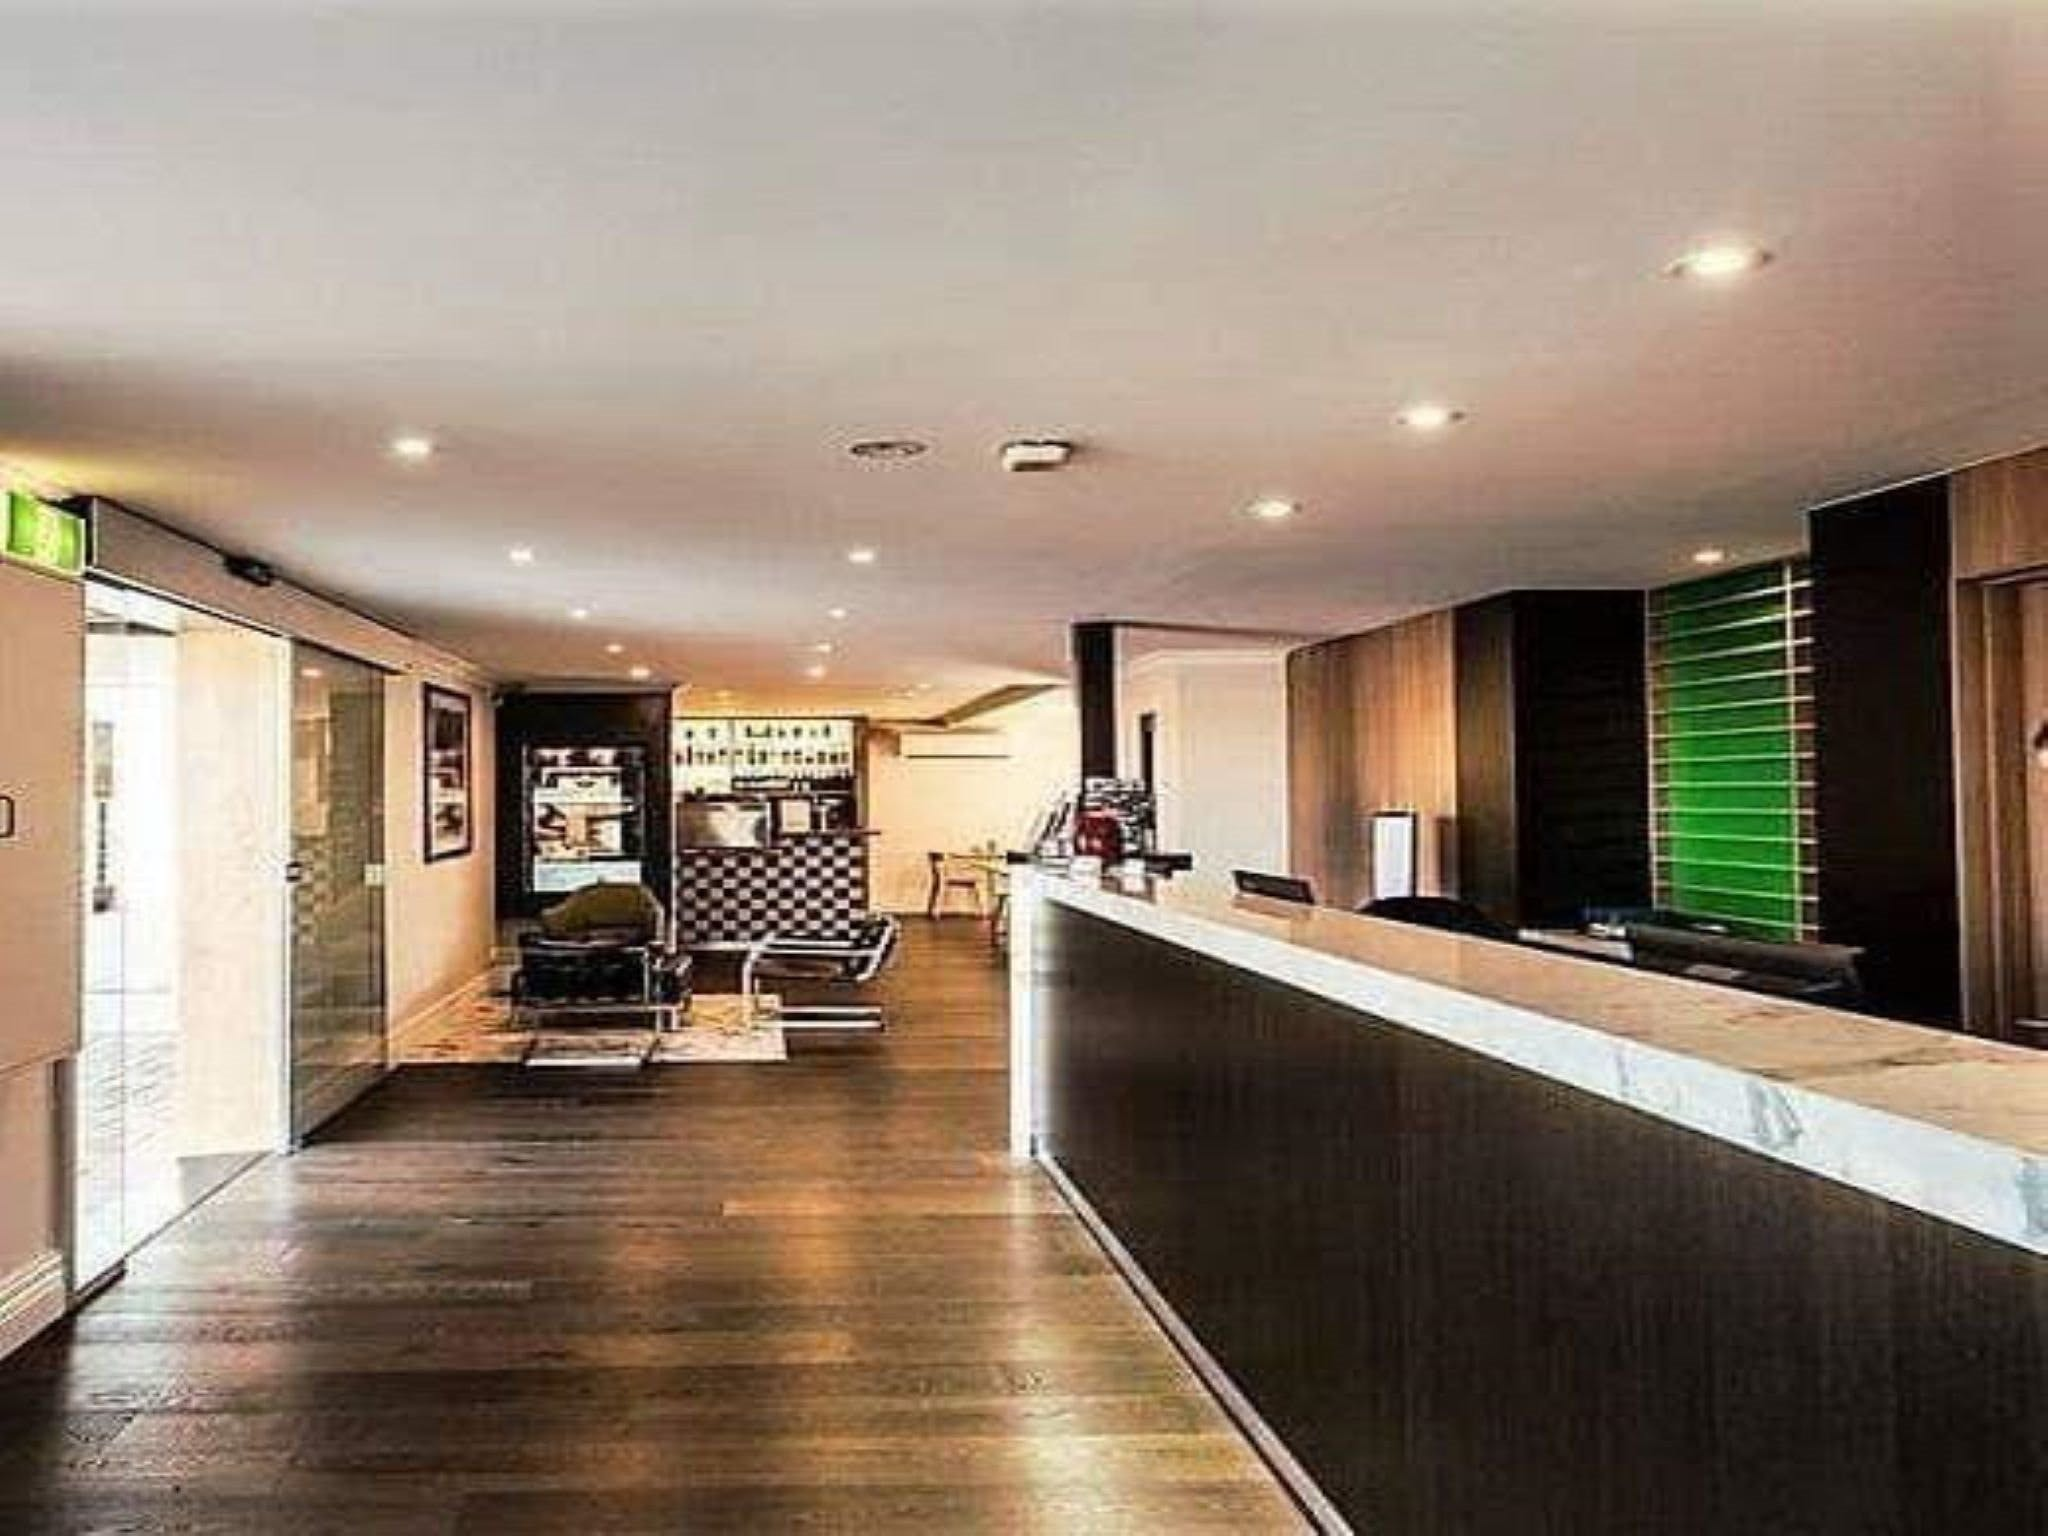 The Waverley International Hotel - Perisher Accommodation